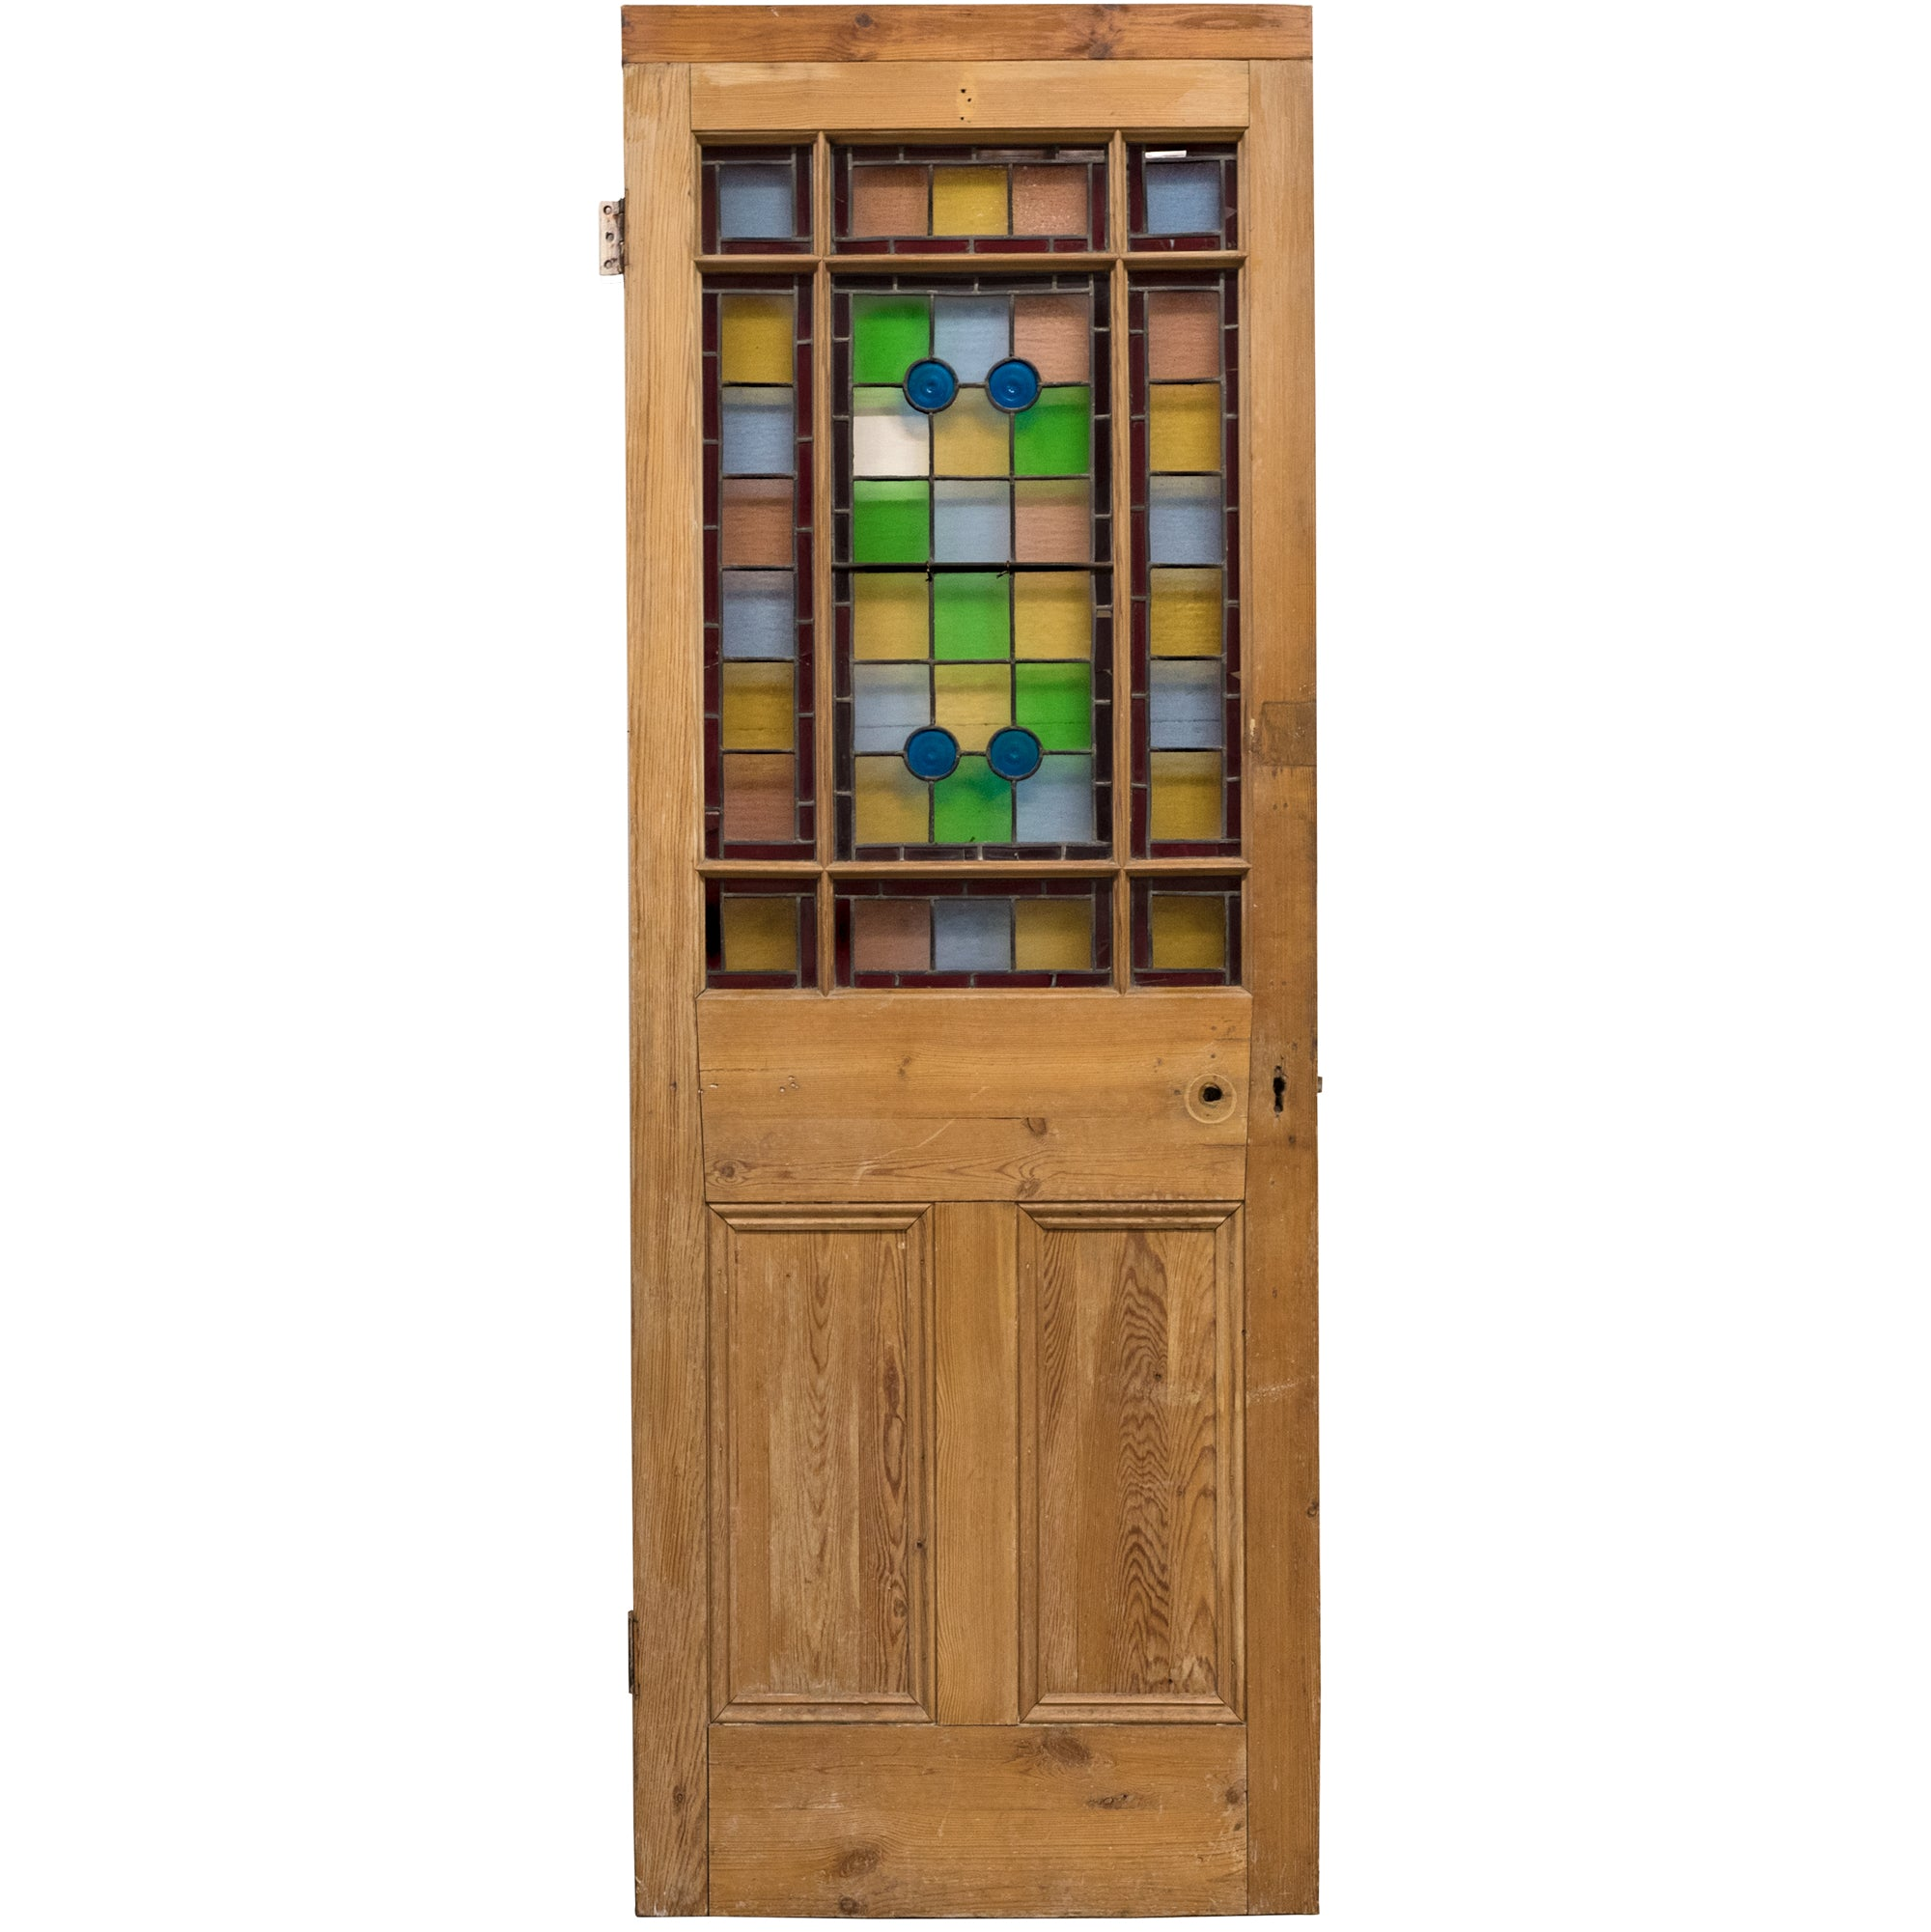 Antique Victorian Stained Glass Glazed Door (195.5cm x 70.5cm) | The Architectural Forum